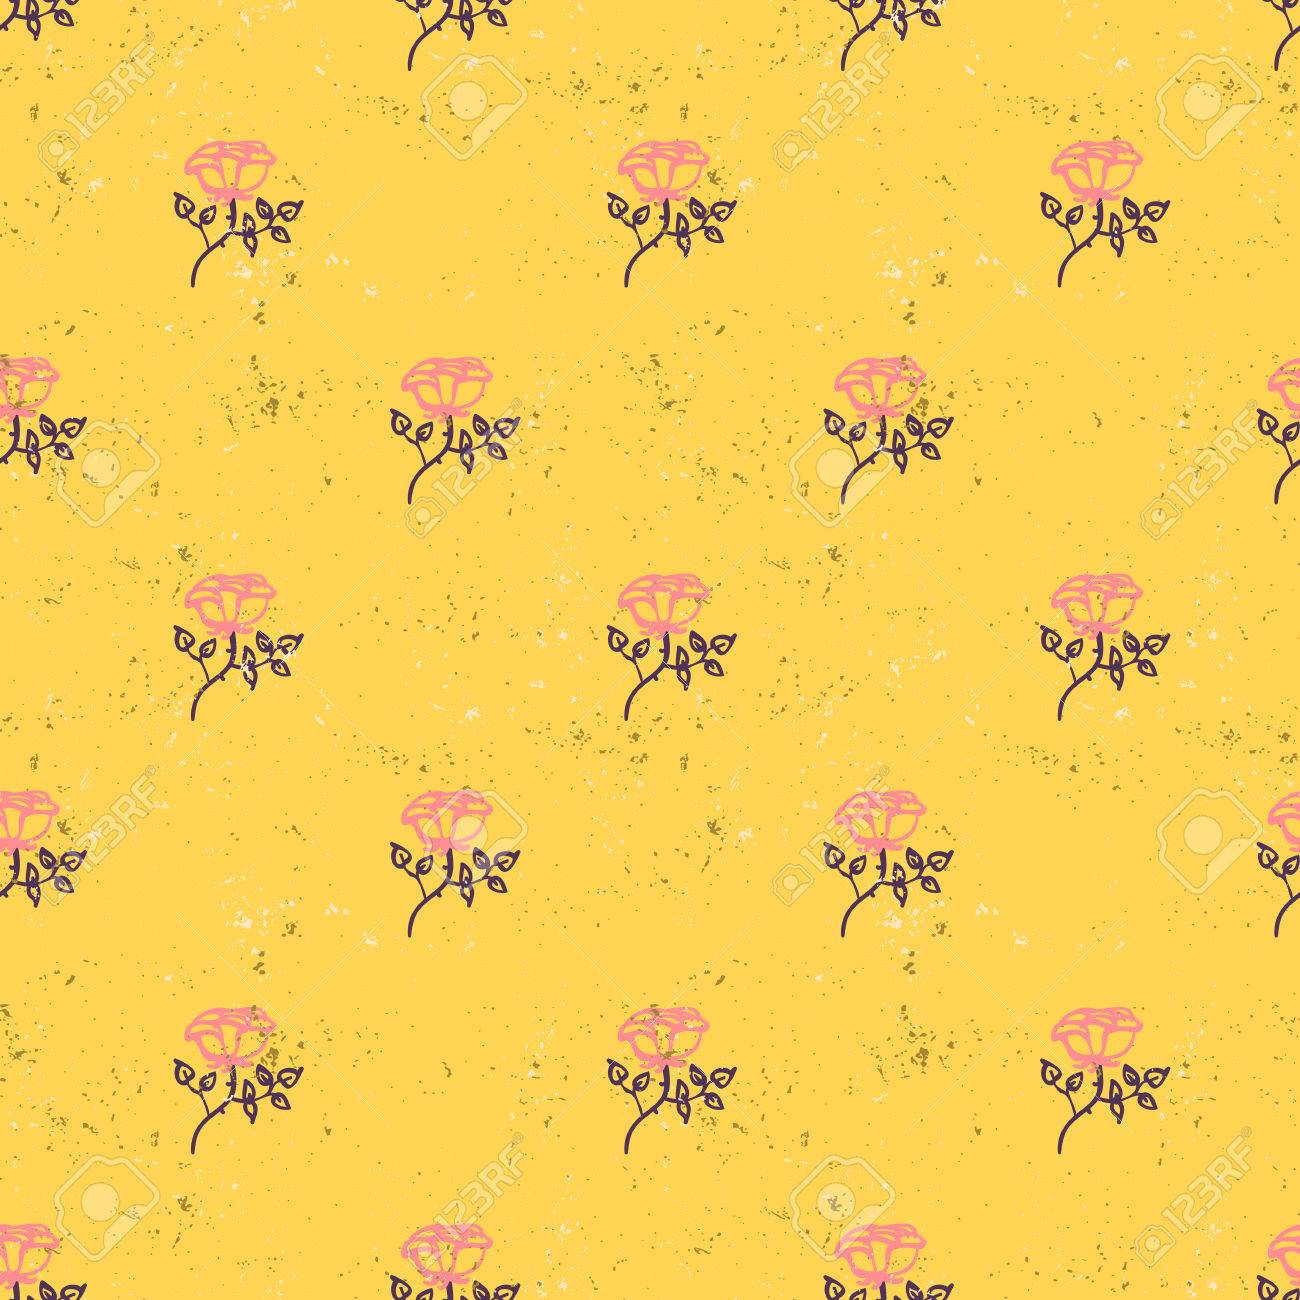 Vintage Floral Pattern With Small Pink Roses On Mustard Background